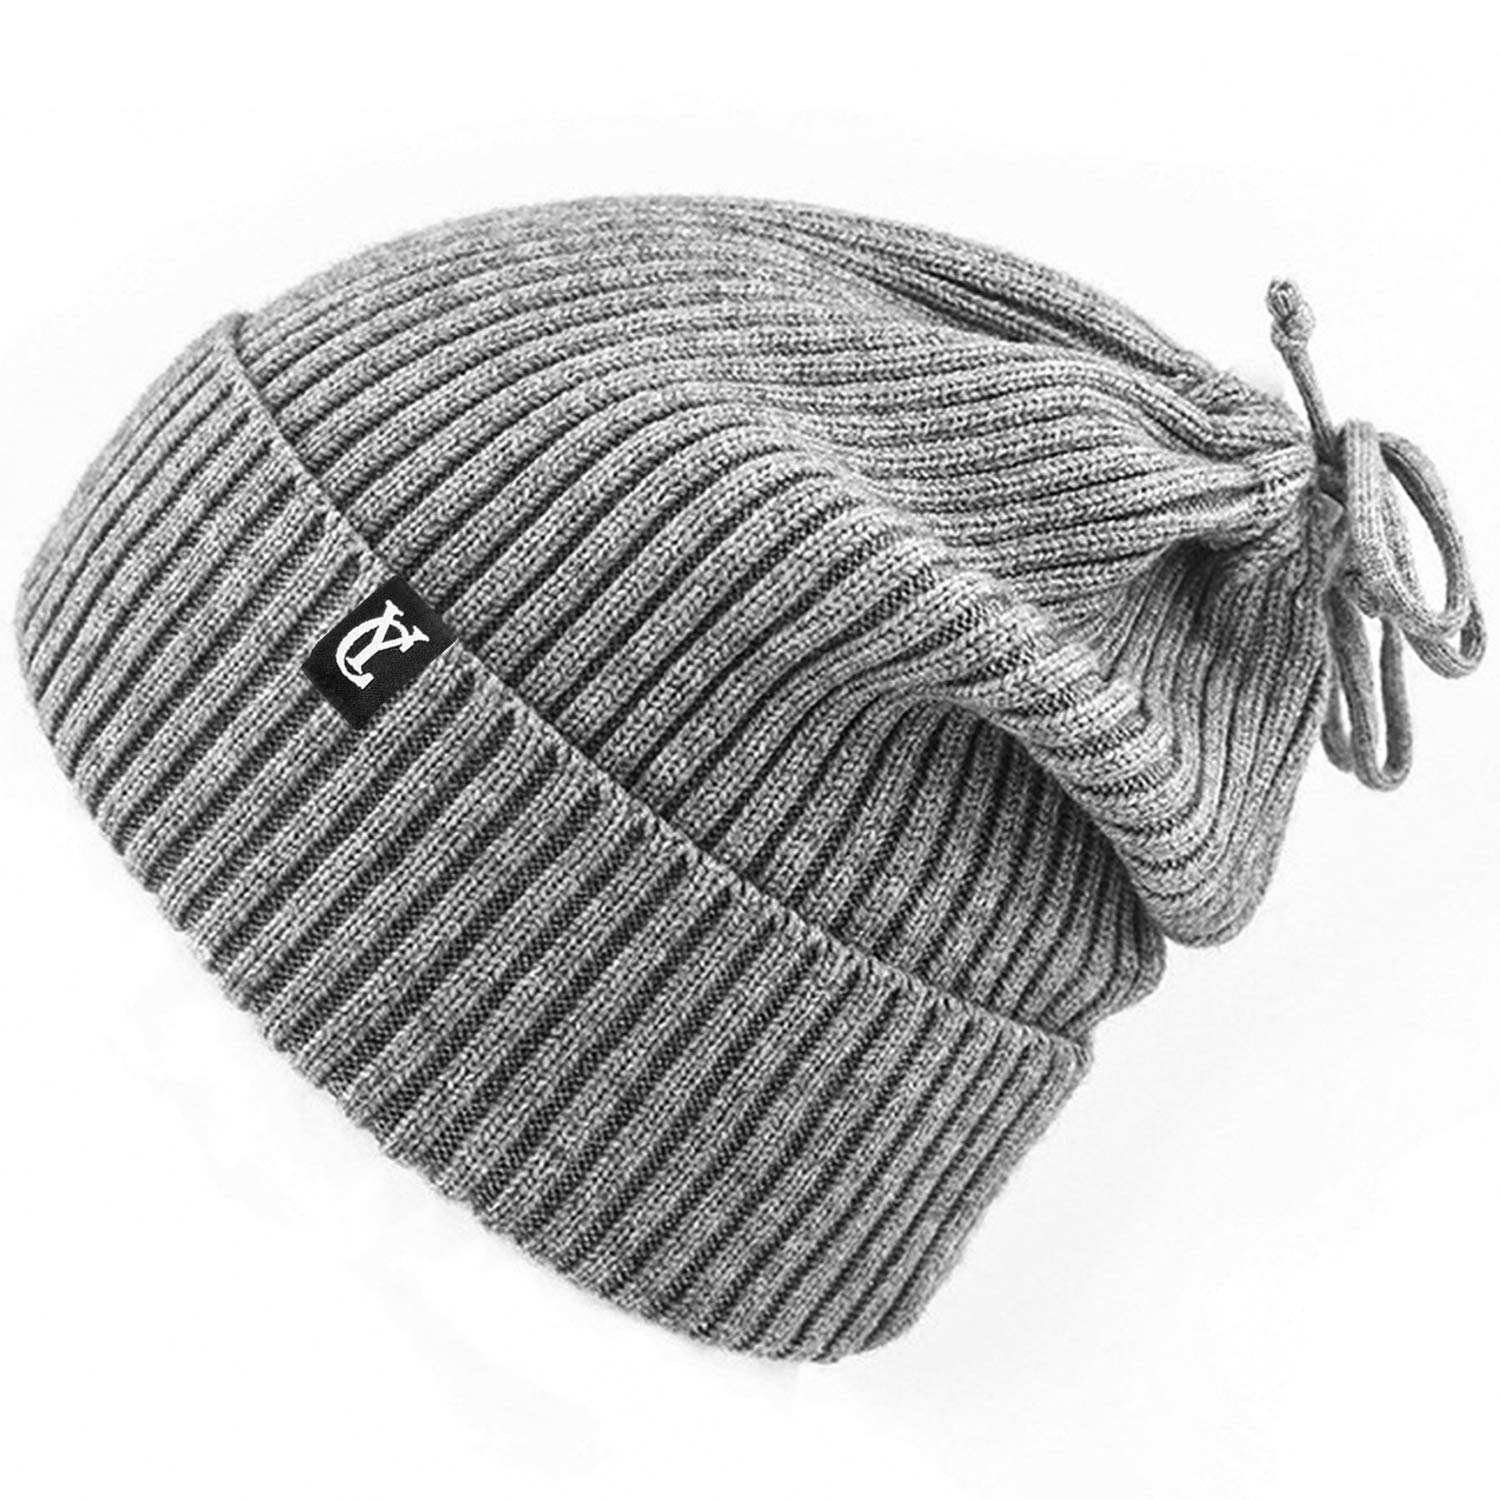 Amazon.com  Yobenki Cable Knit Beanie hat 51bac007f39